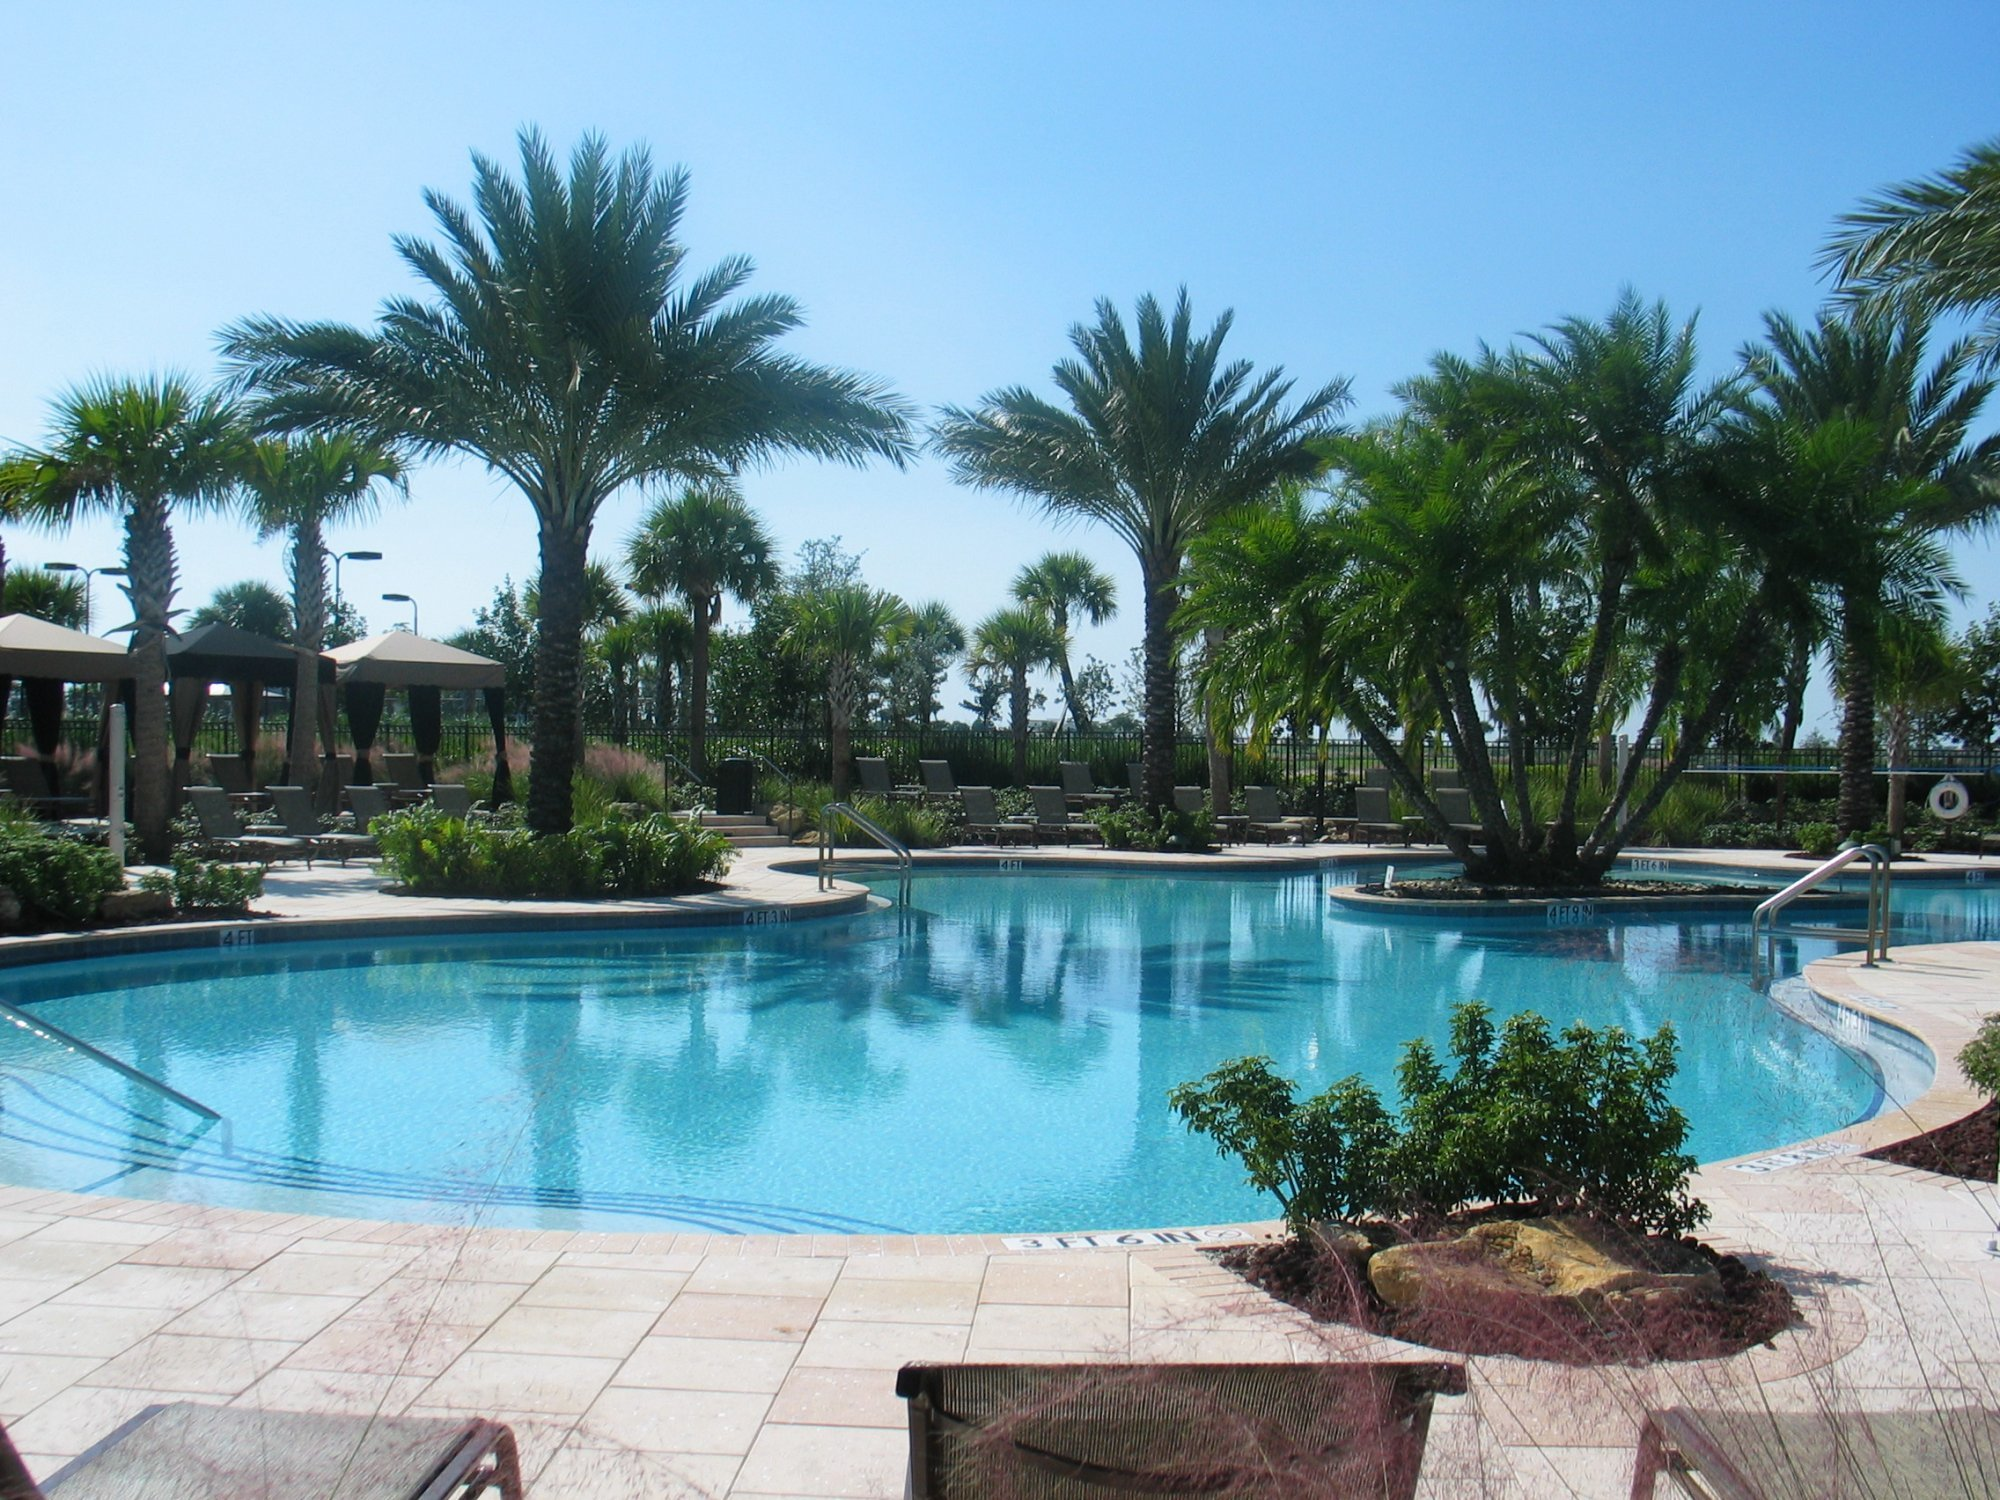 Parkland Golf & country club pool